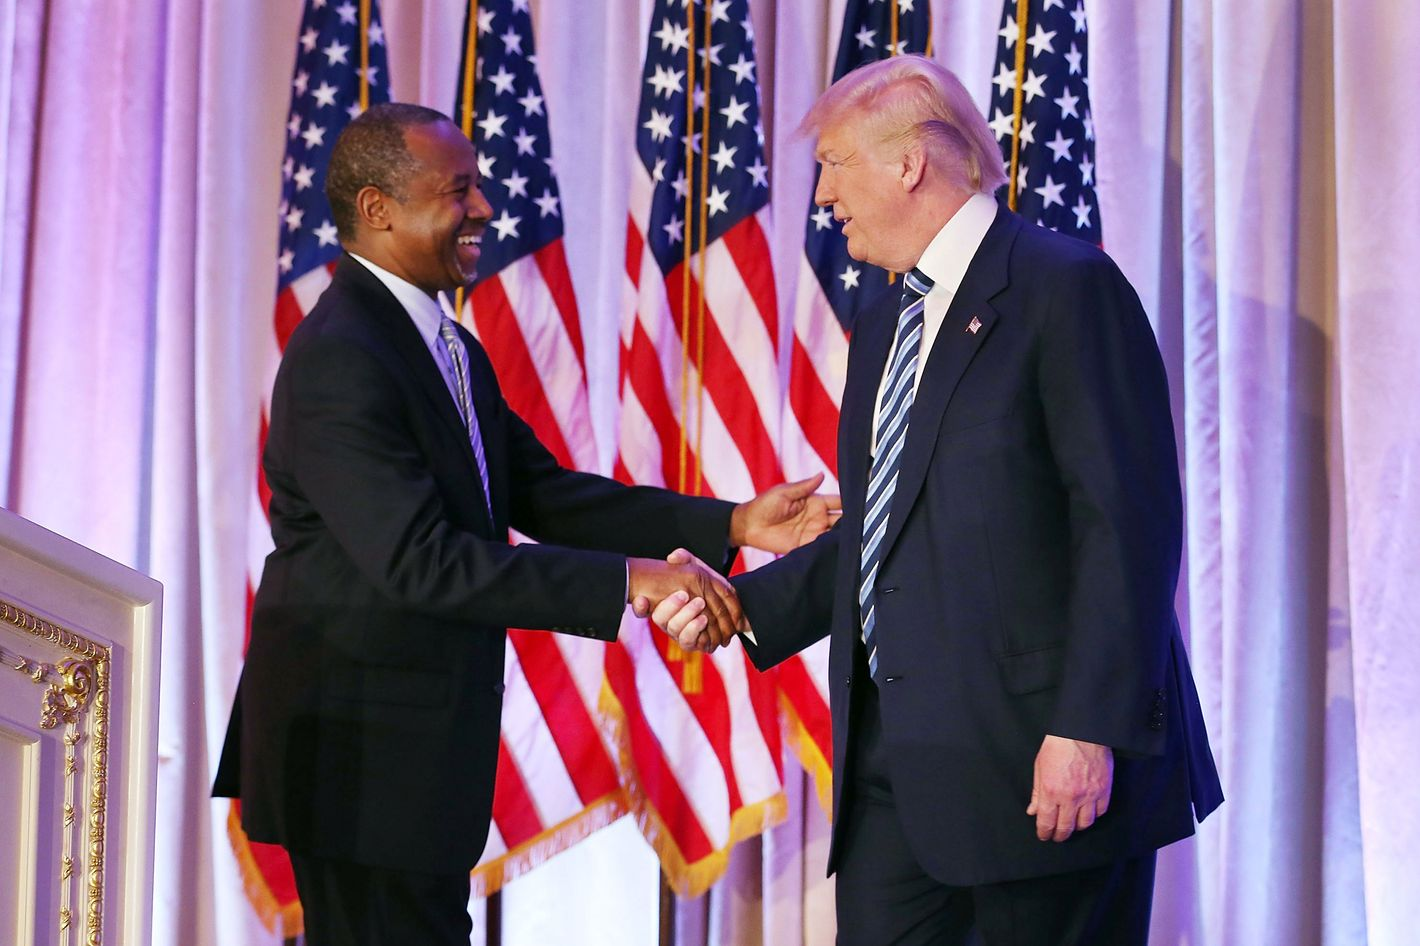 carson is trump's pick for hud, for some awful reason